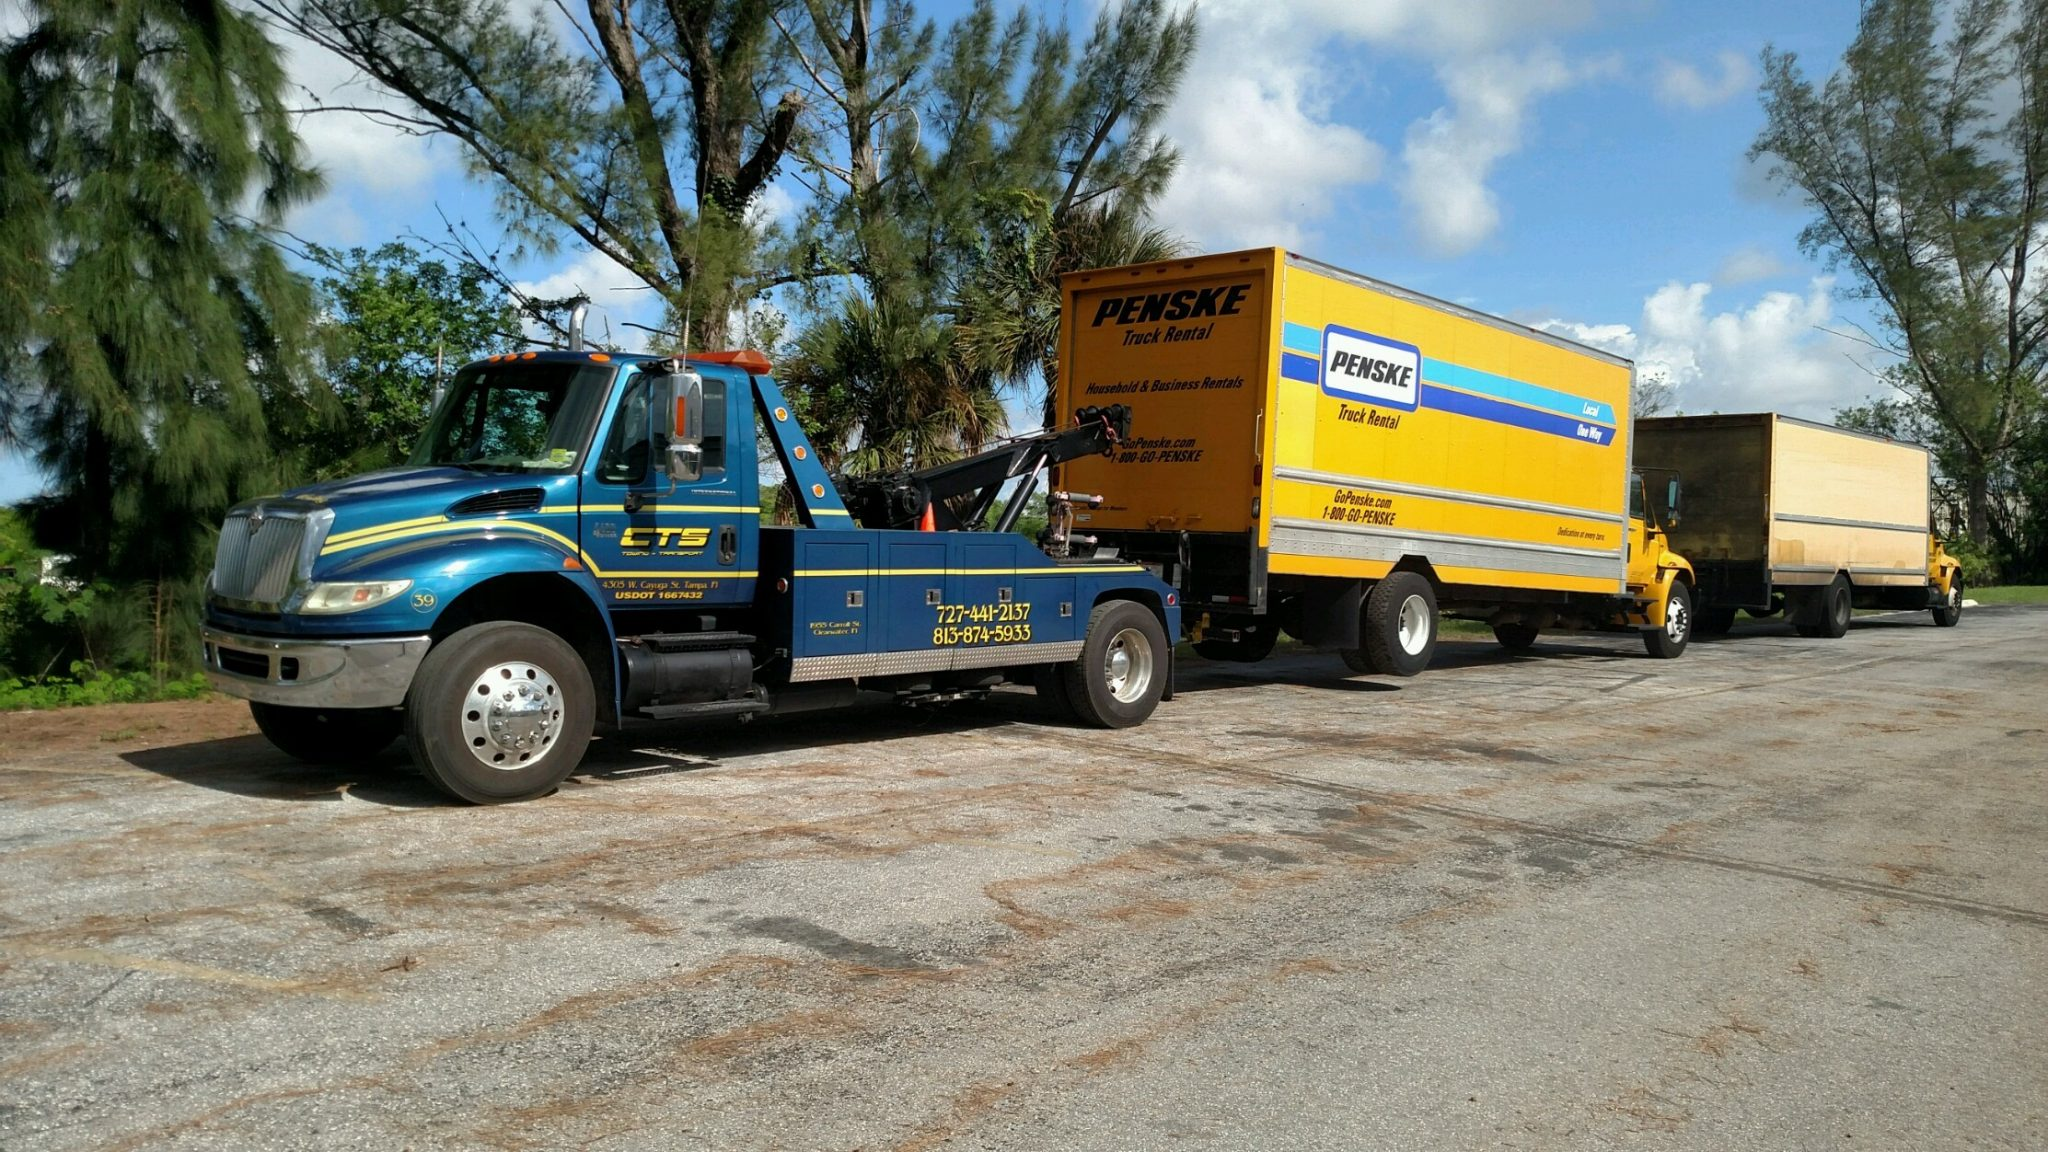 Medium duty penske box truck being towed by CTS Tow truck